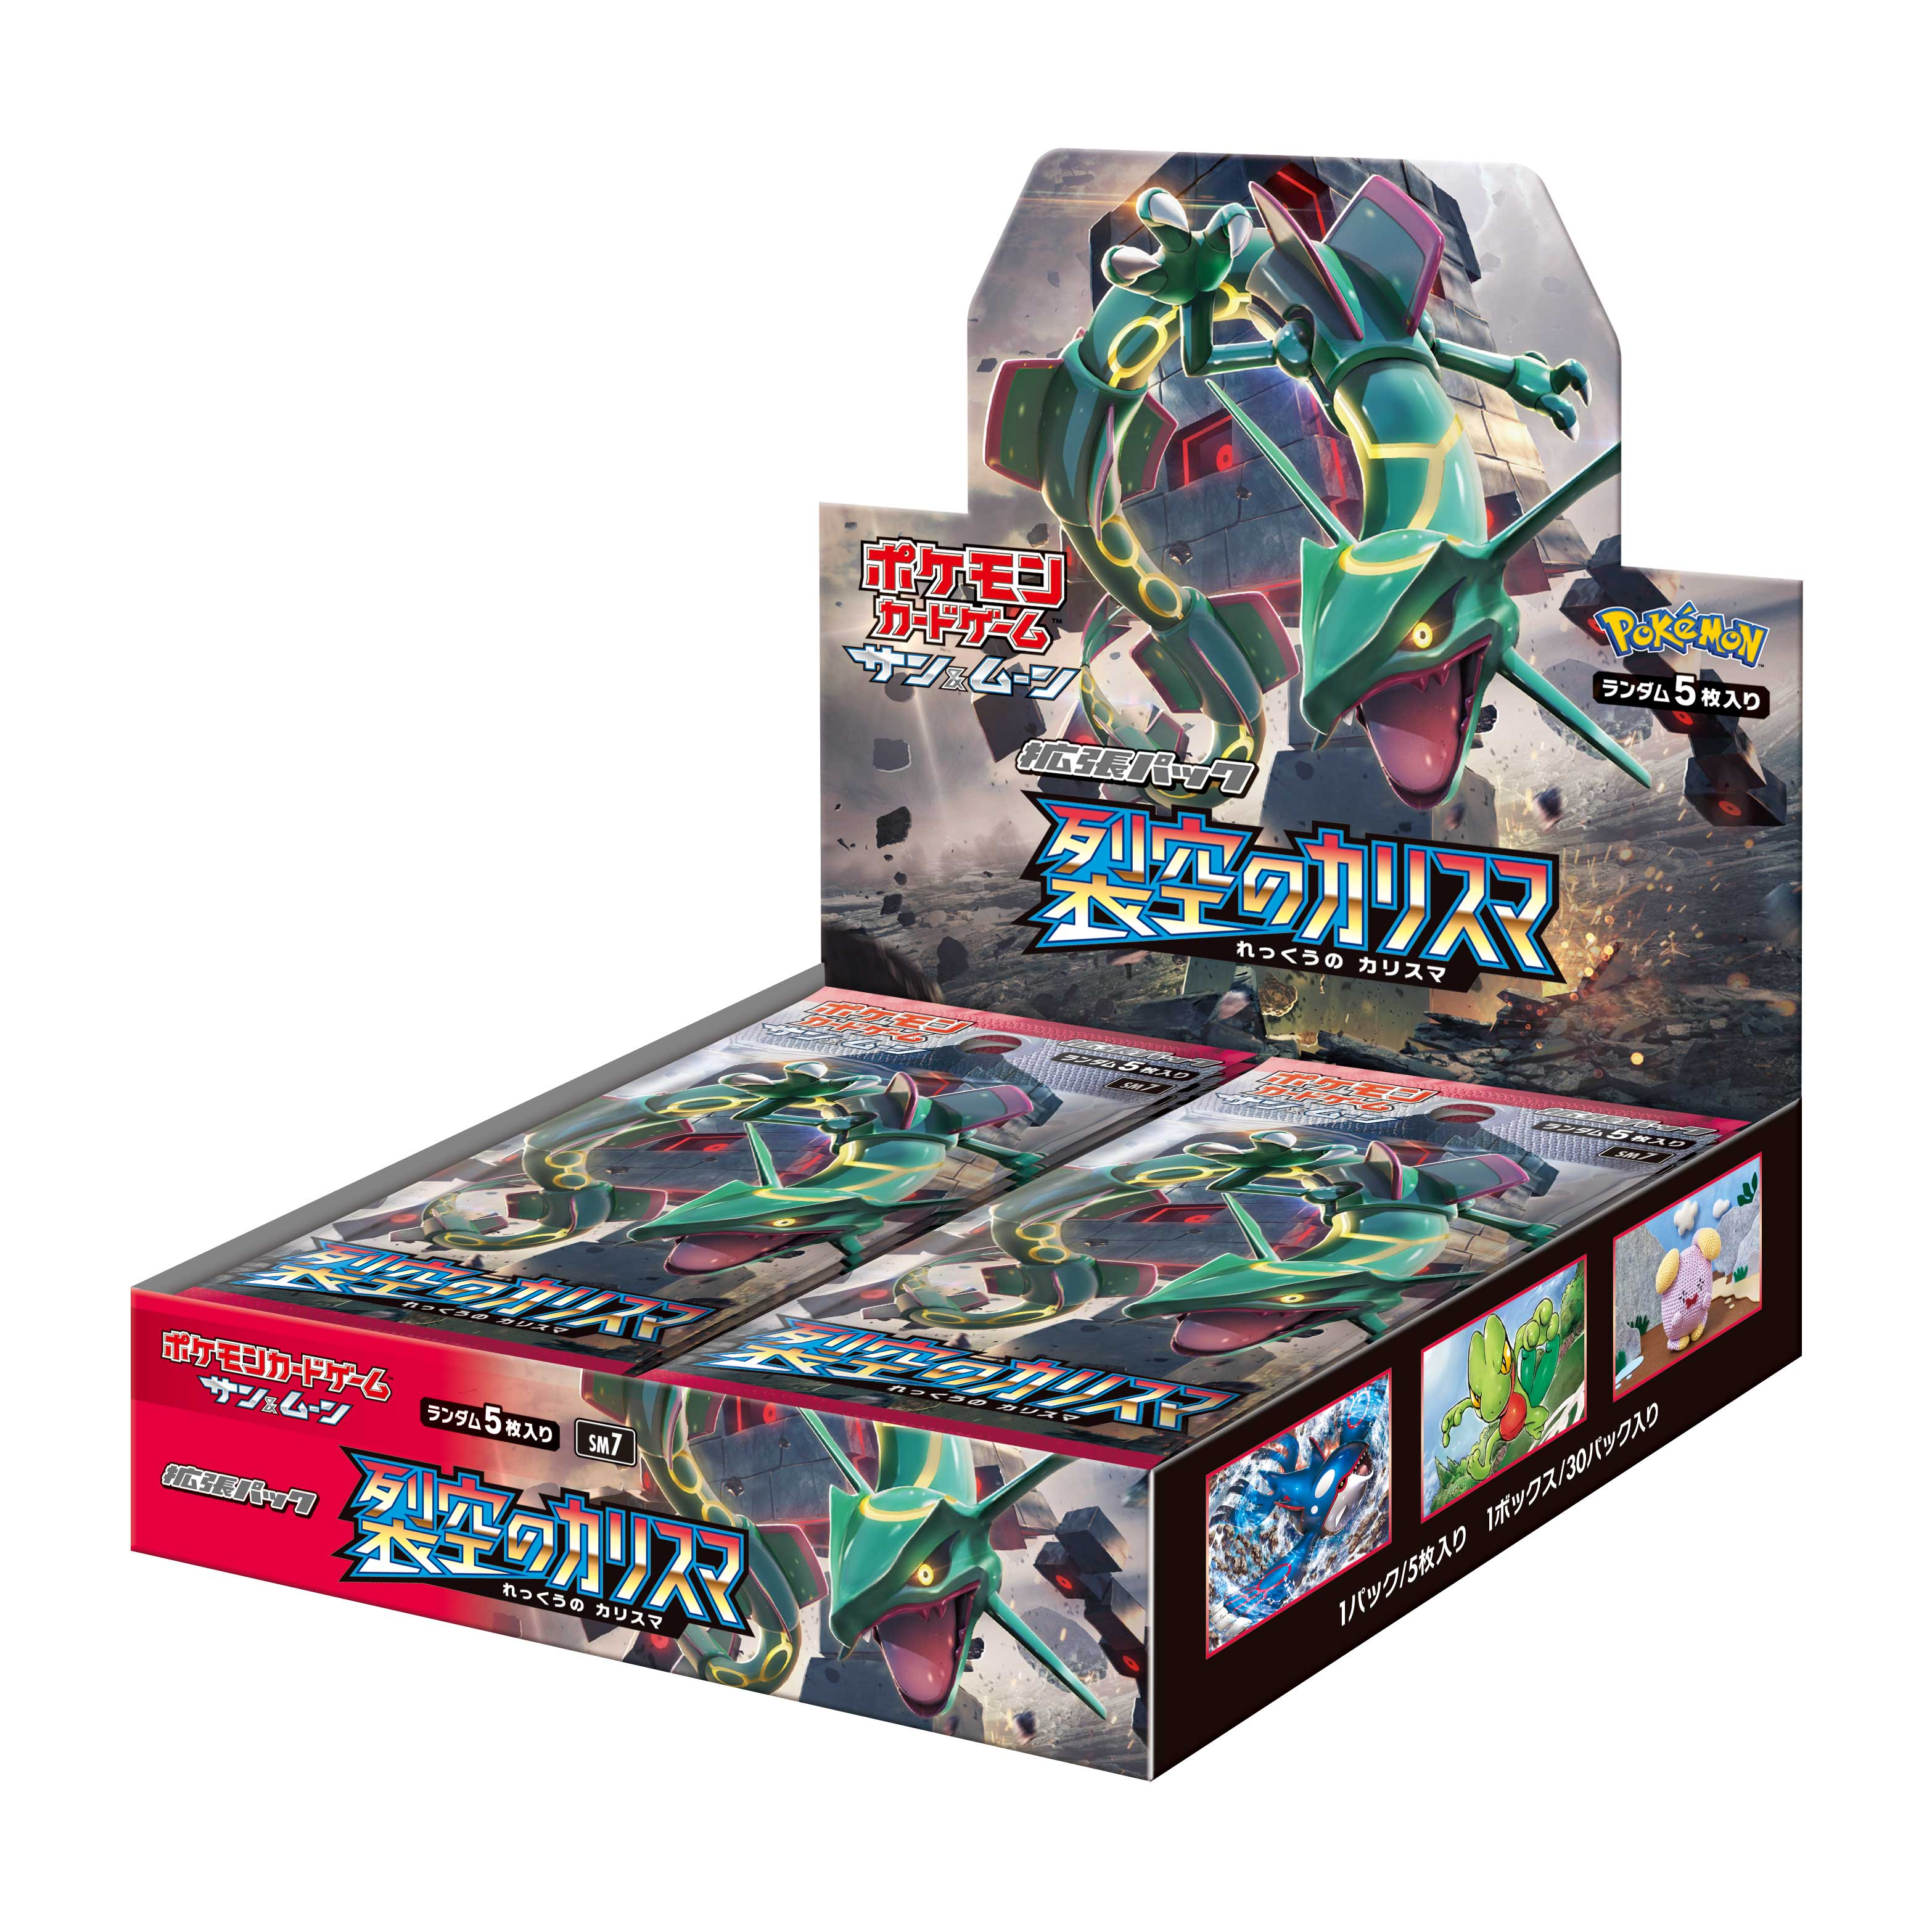 Pokemon Card Game Sword /& Shield Expansion Pack Sword Shield Box Anime Toy